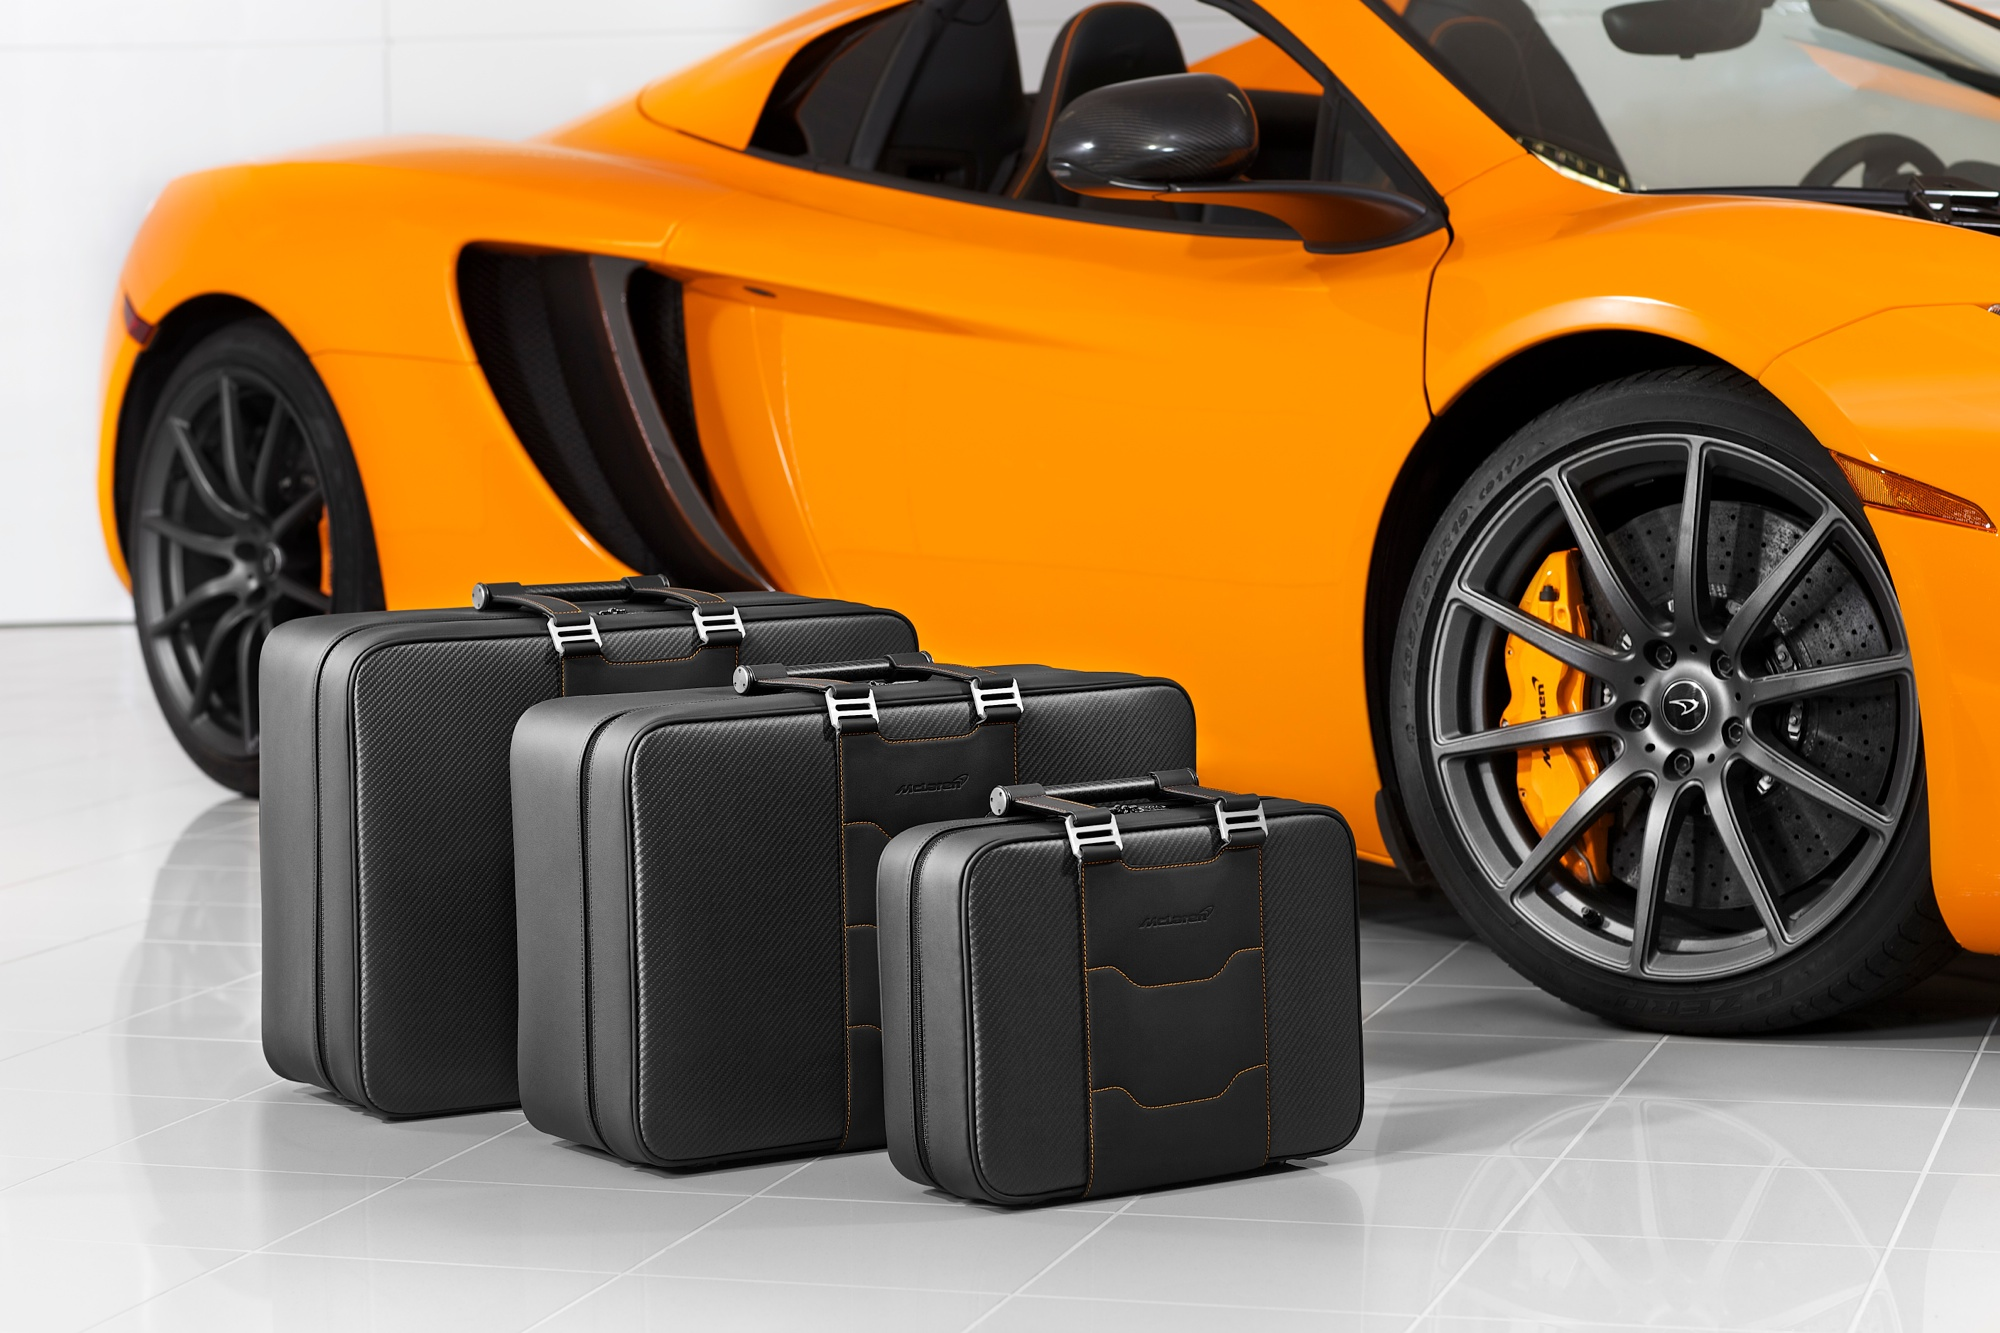 3 mclaren_automotive_merchandise021